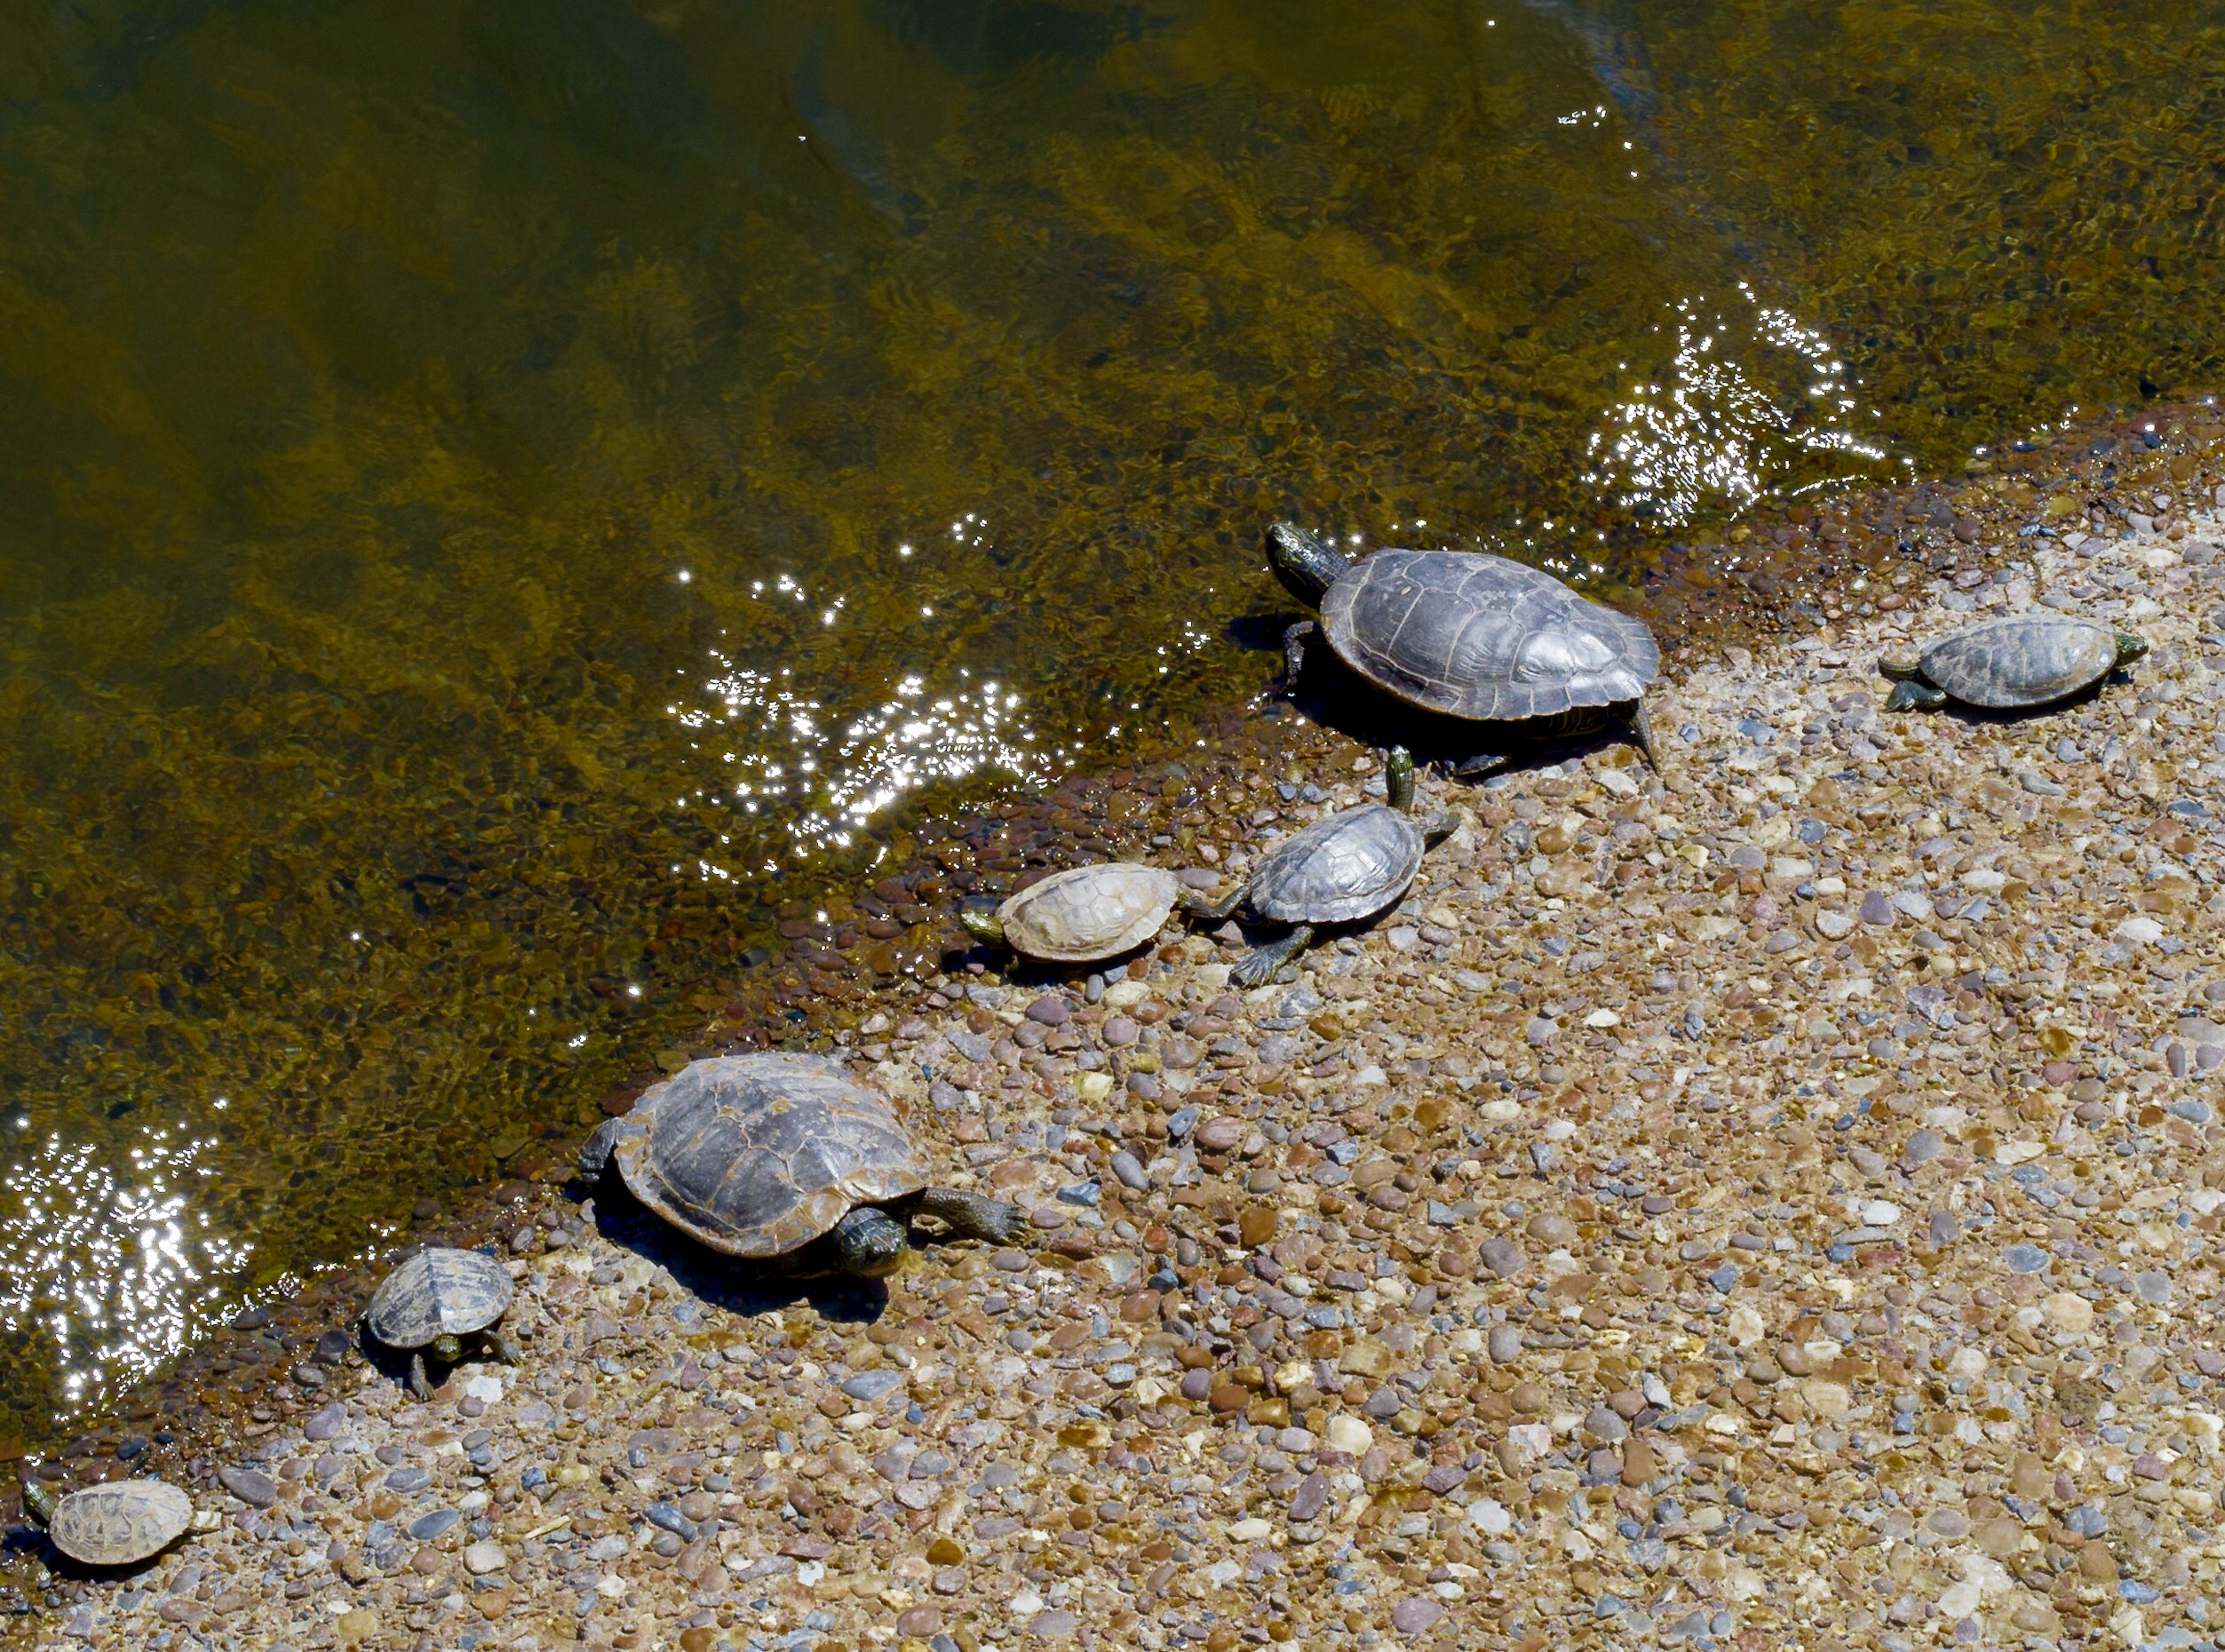 Turtles sunning themselves under a country bridge, on the concrete base of a stanchion.